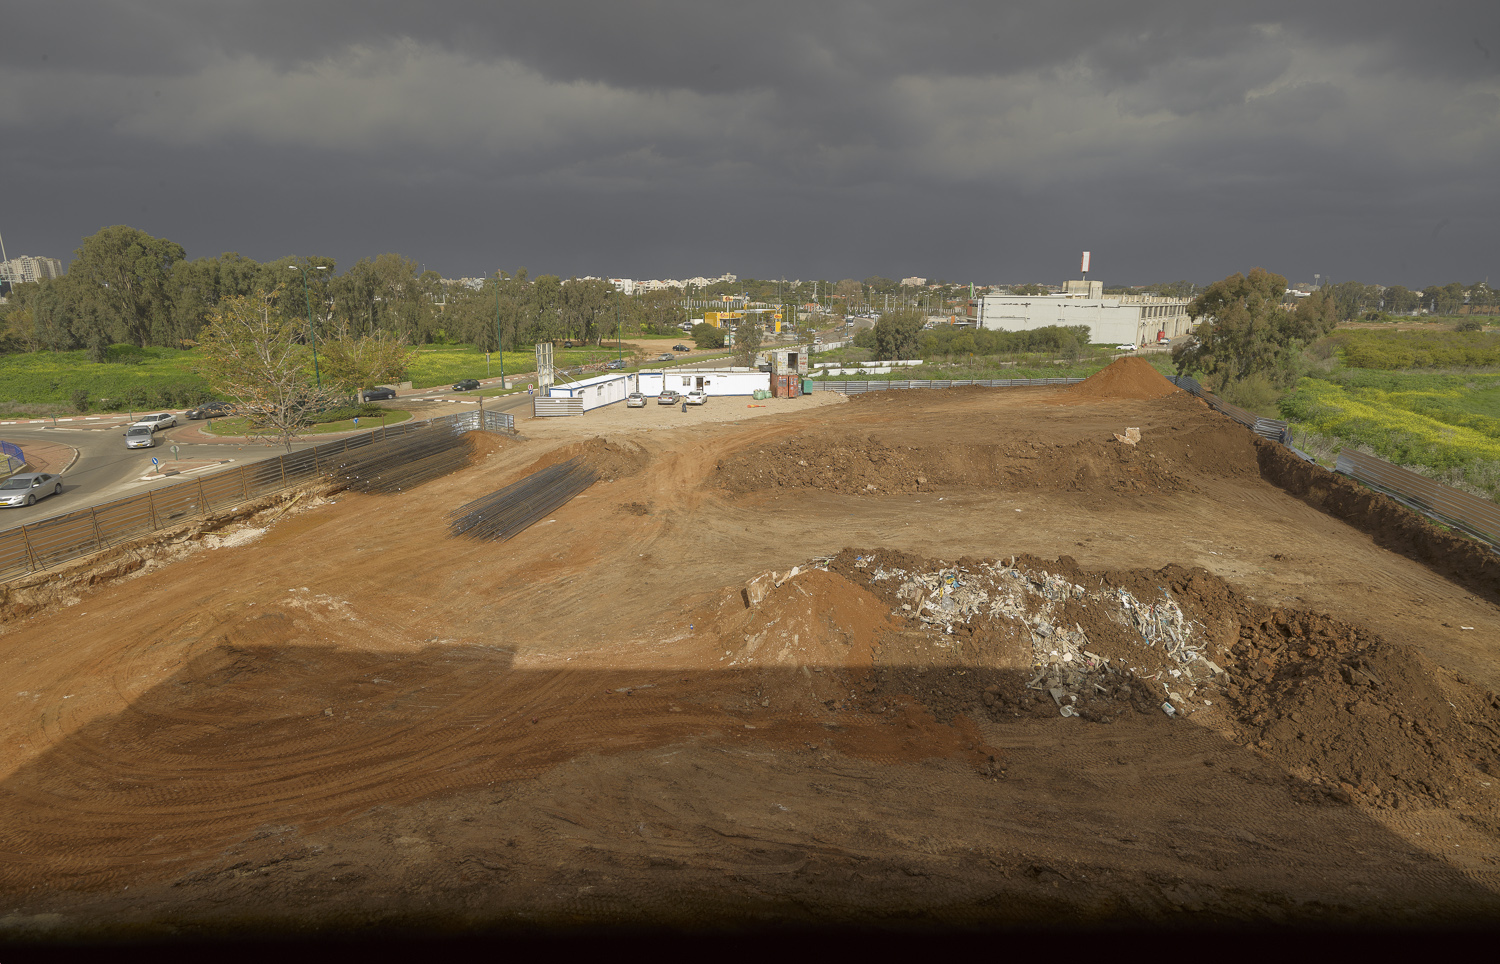 Construction site - Kfar Saba, 2011